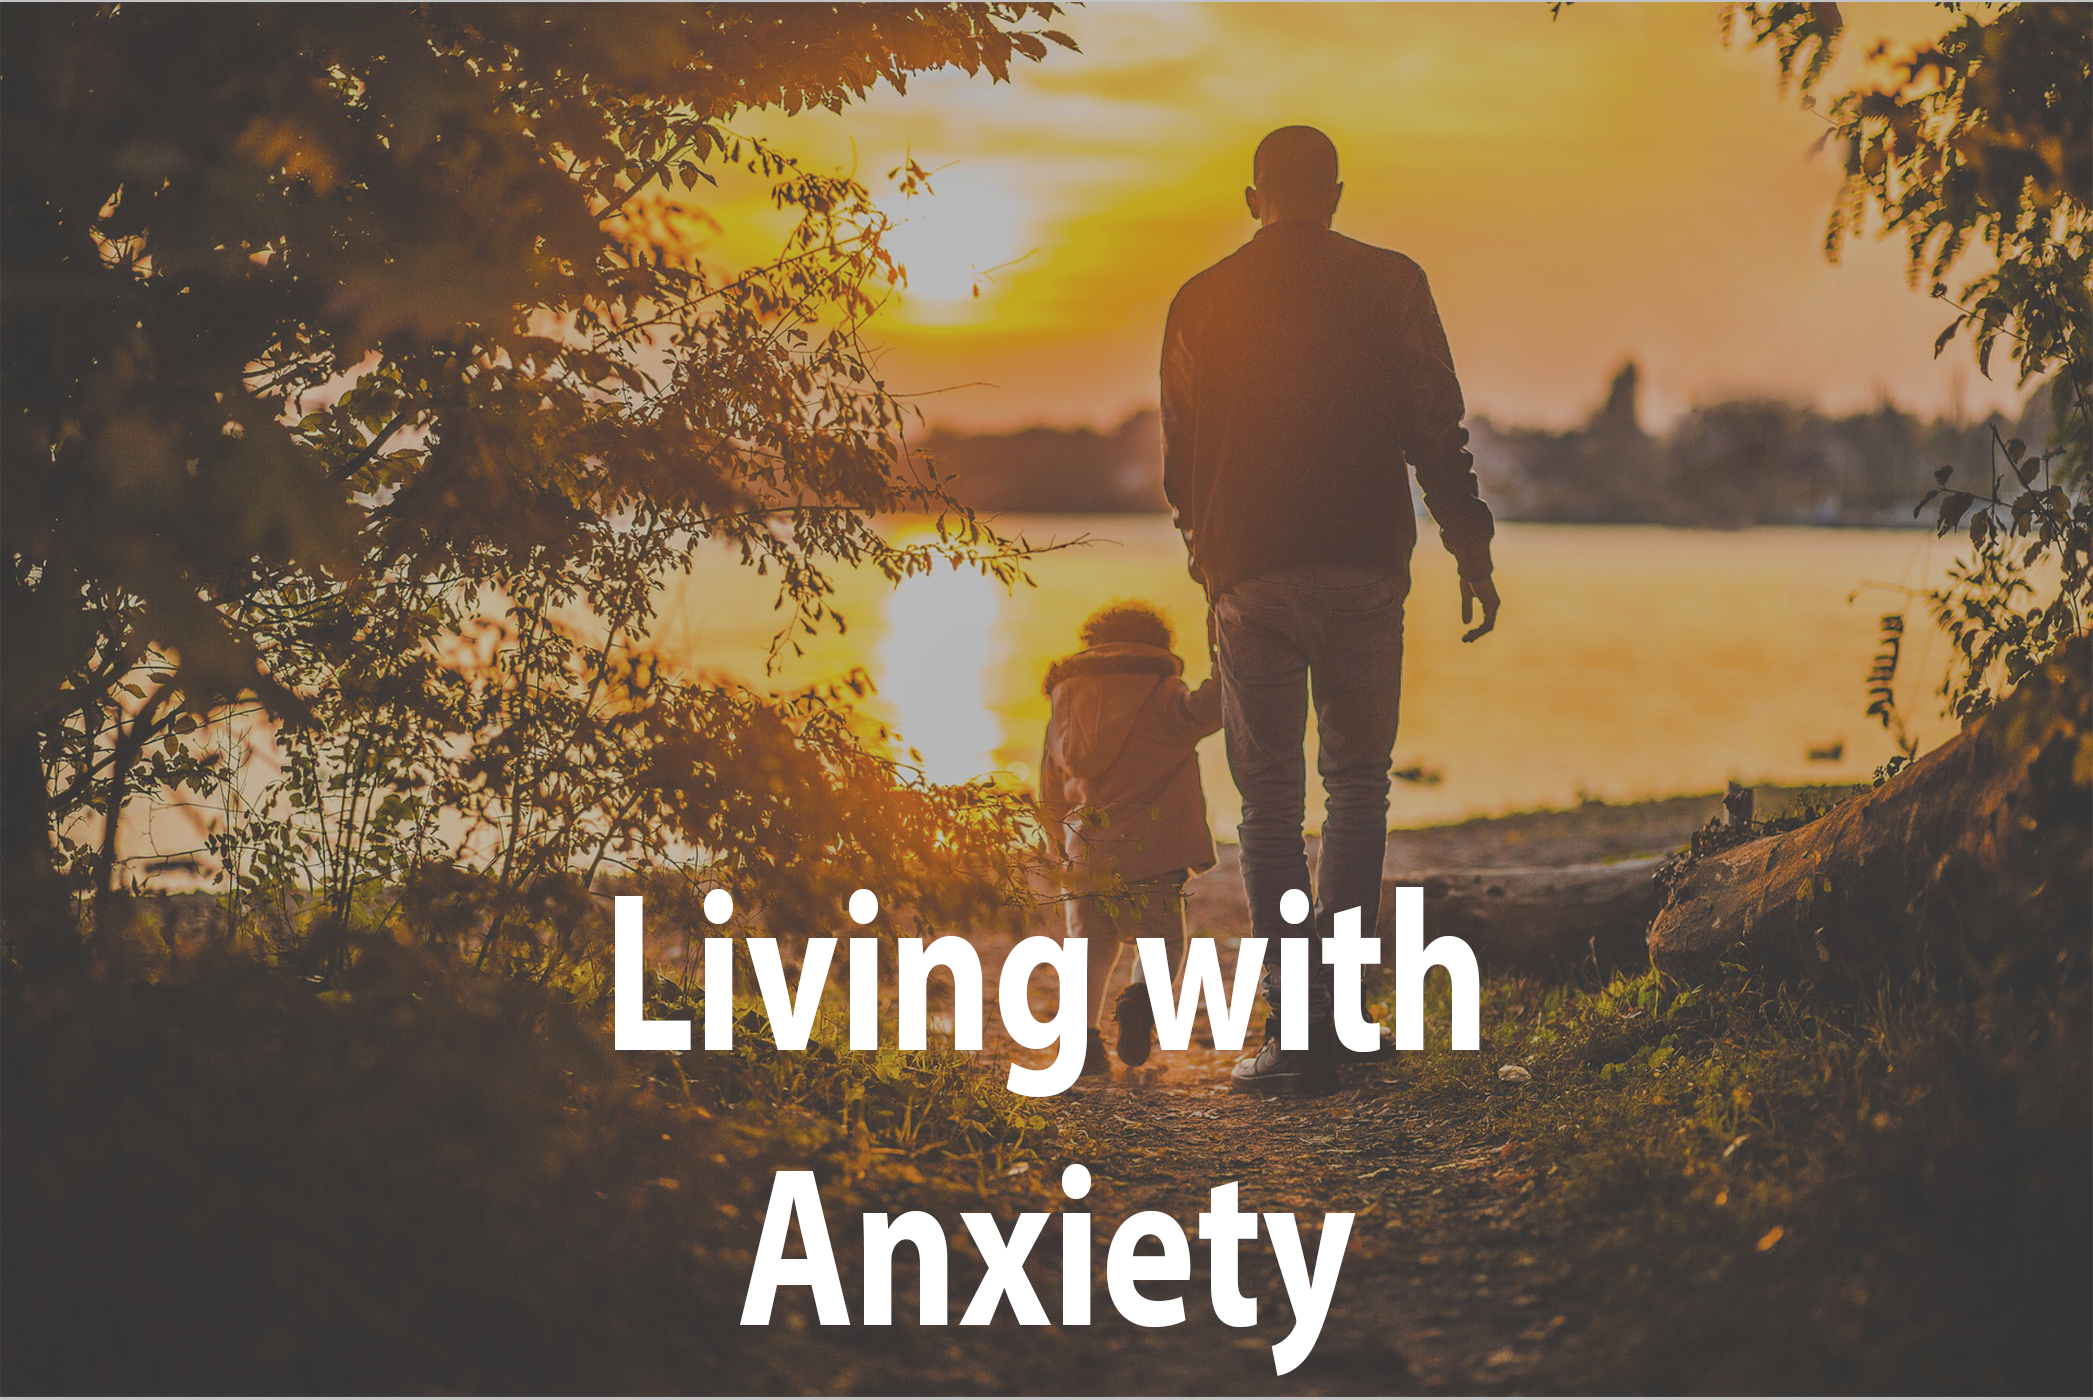 living with anxiety image